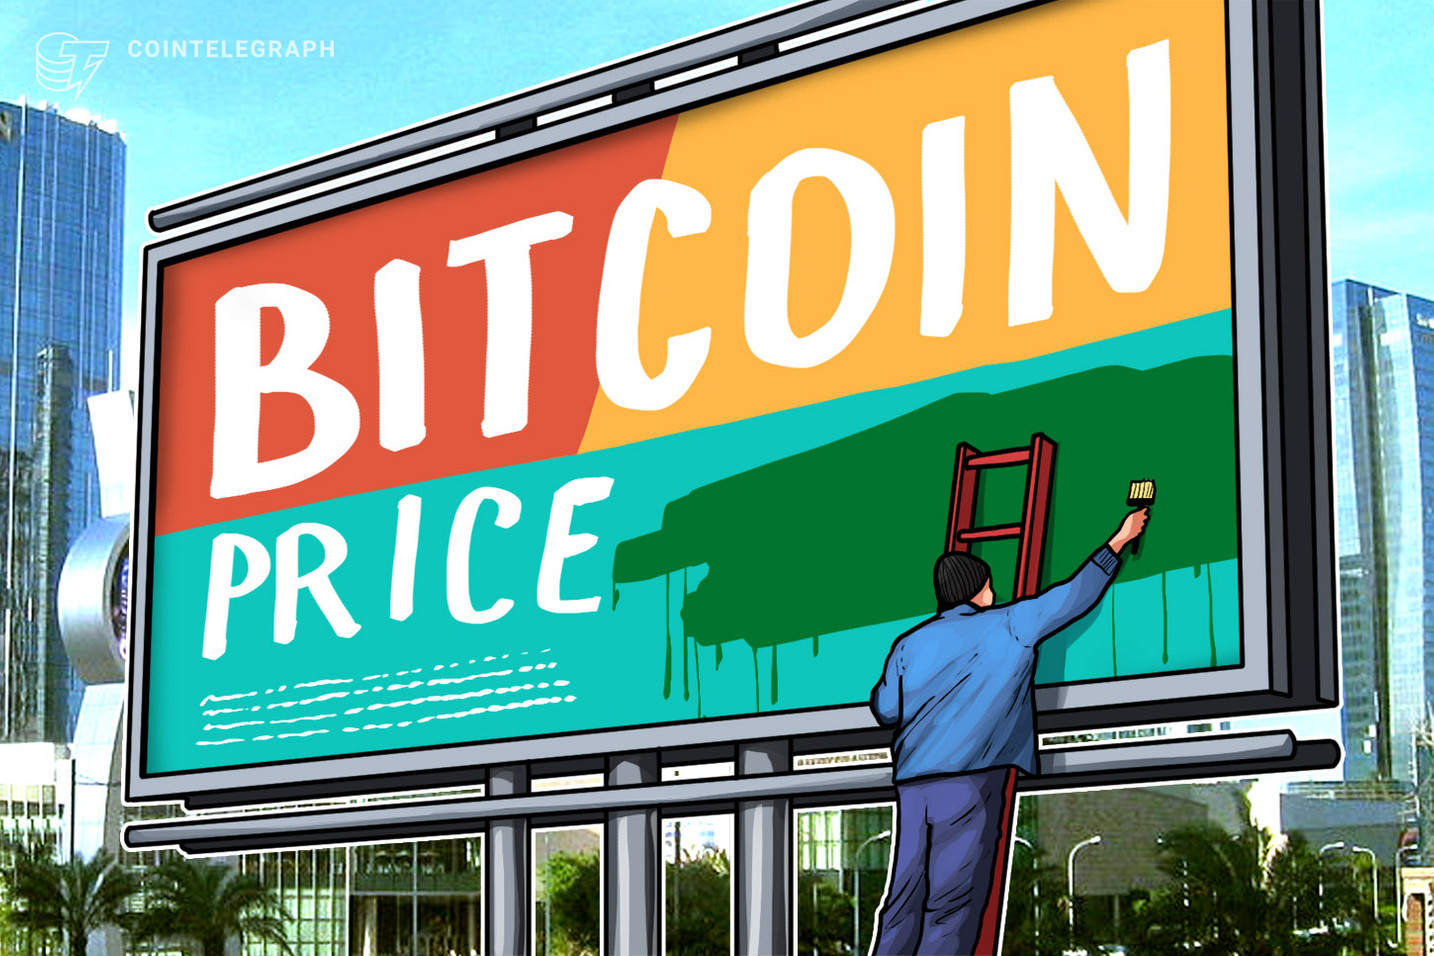 Bitcoin price hits $11,100 wall and drops 6% — Relief rally to follow?